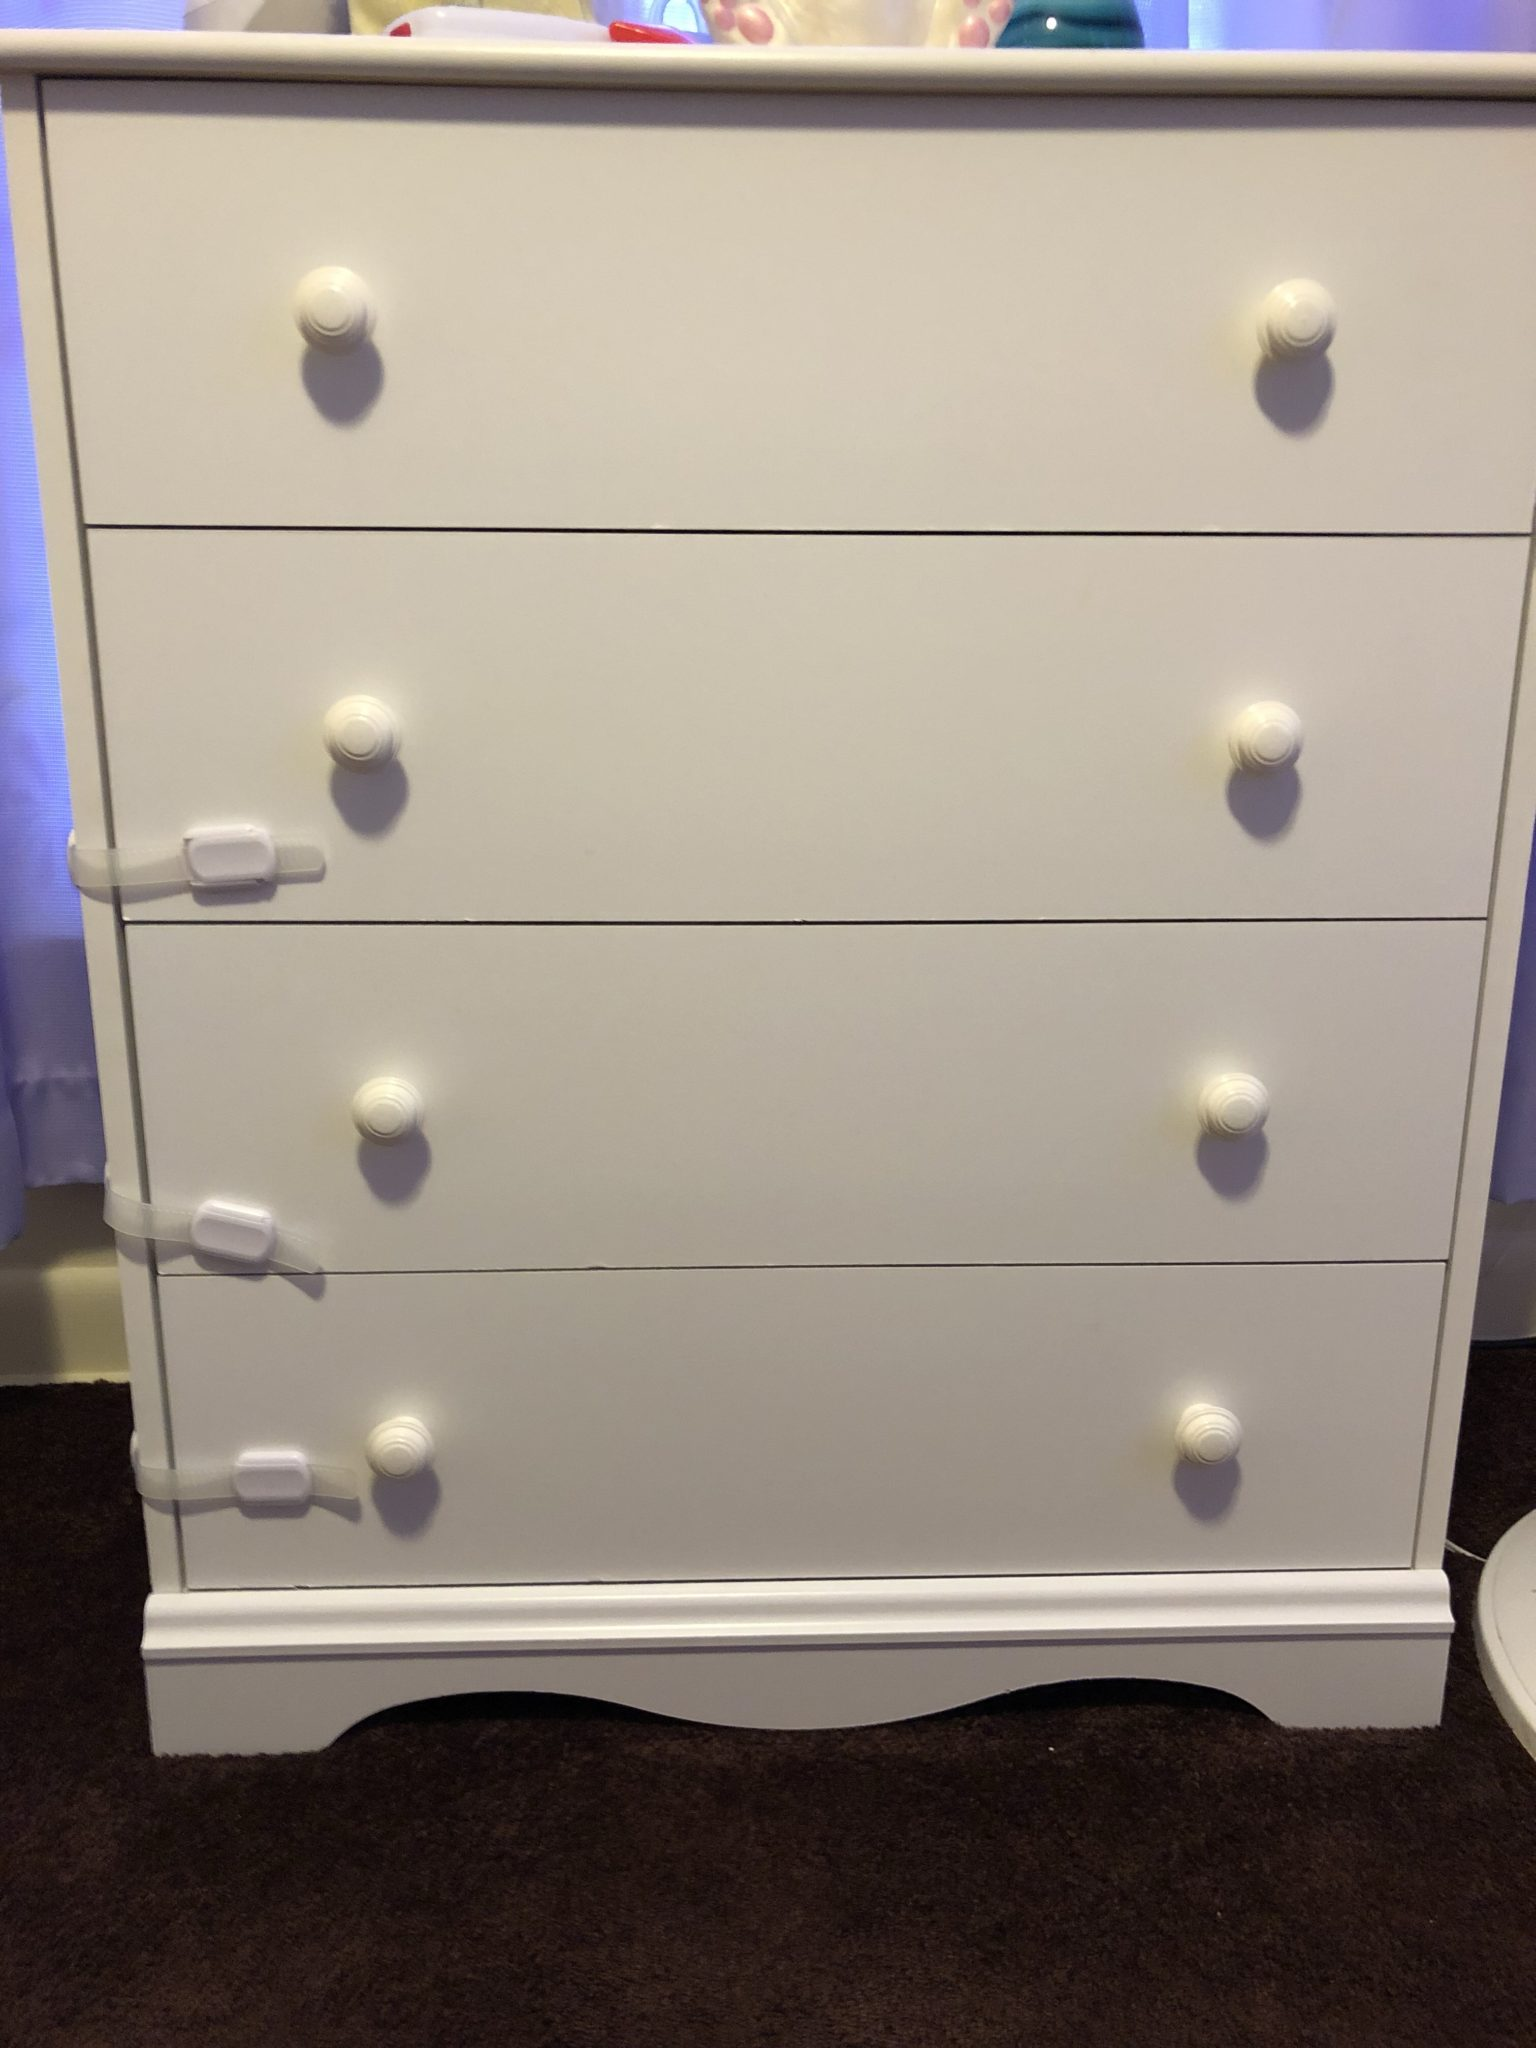 A dresser with locks on the drawers.